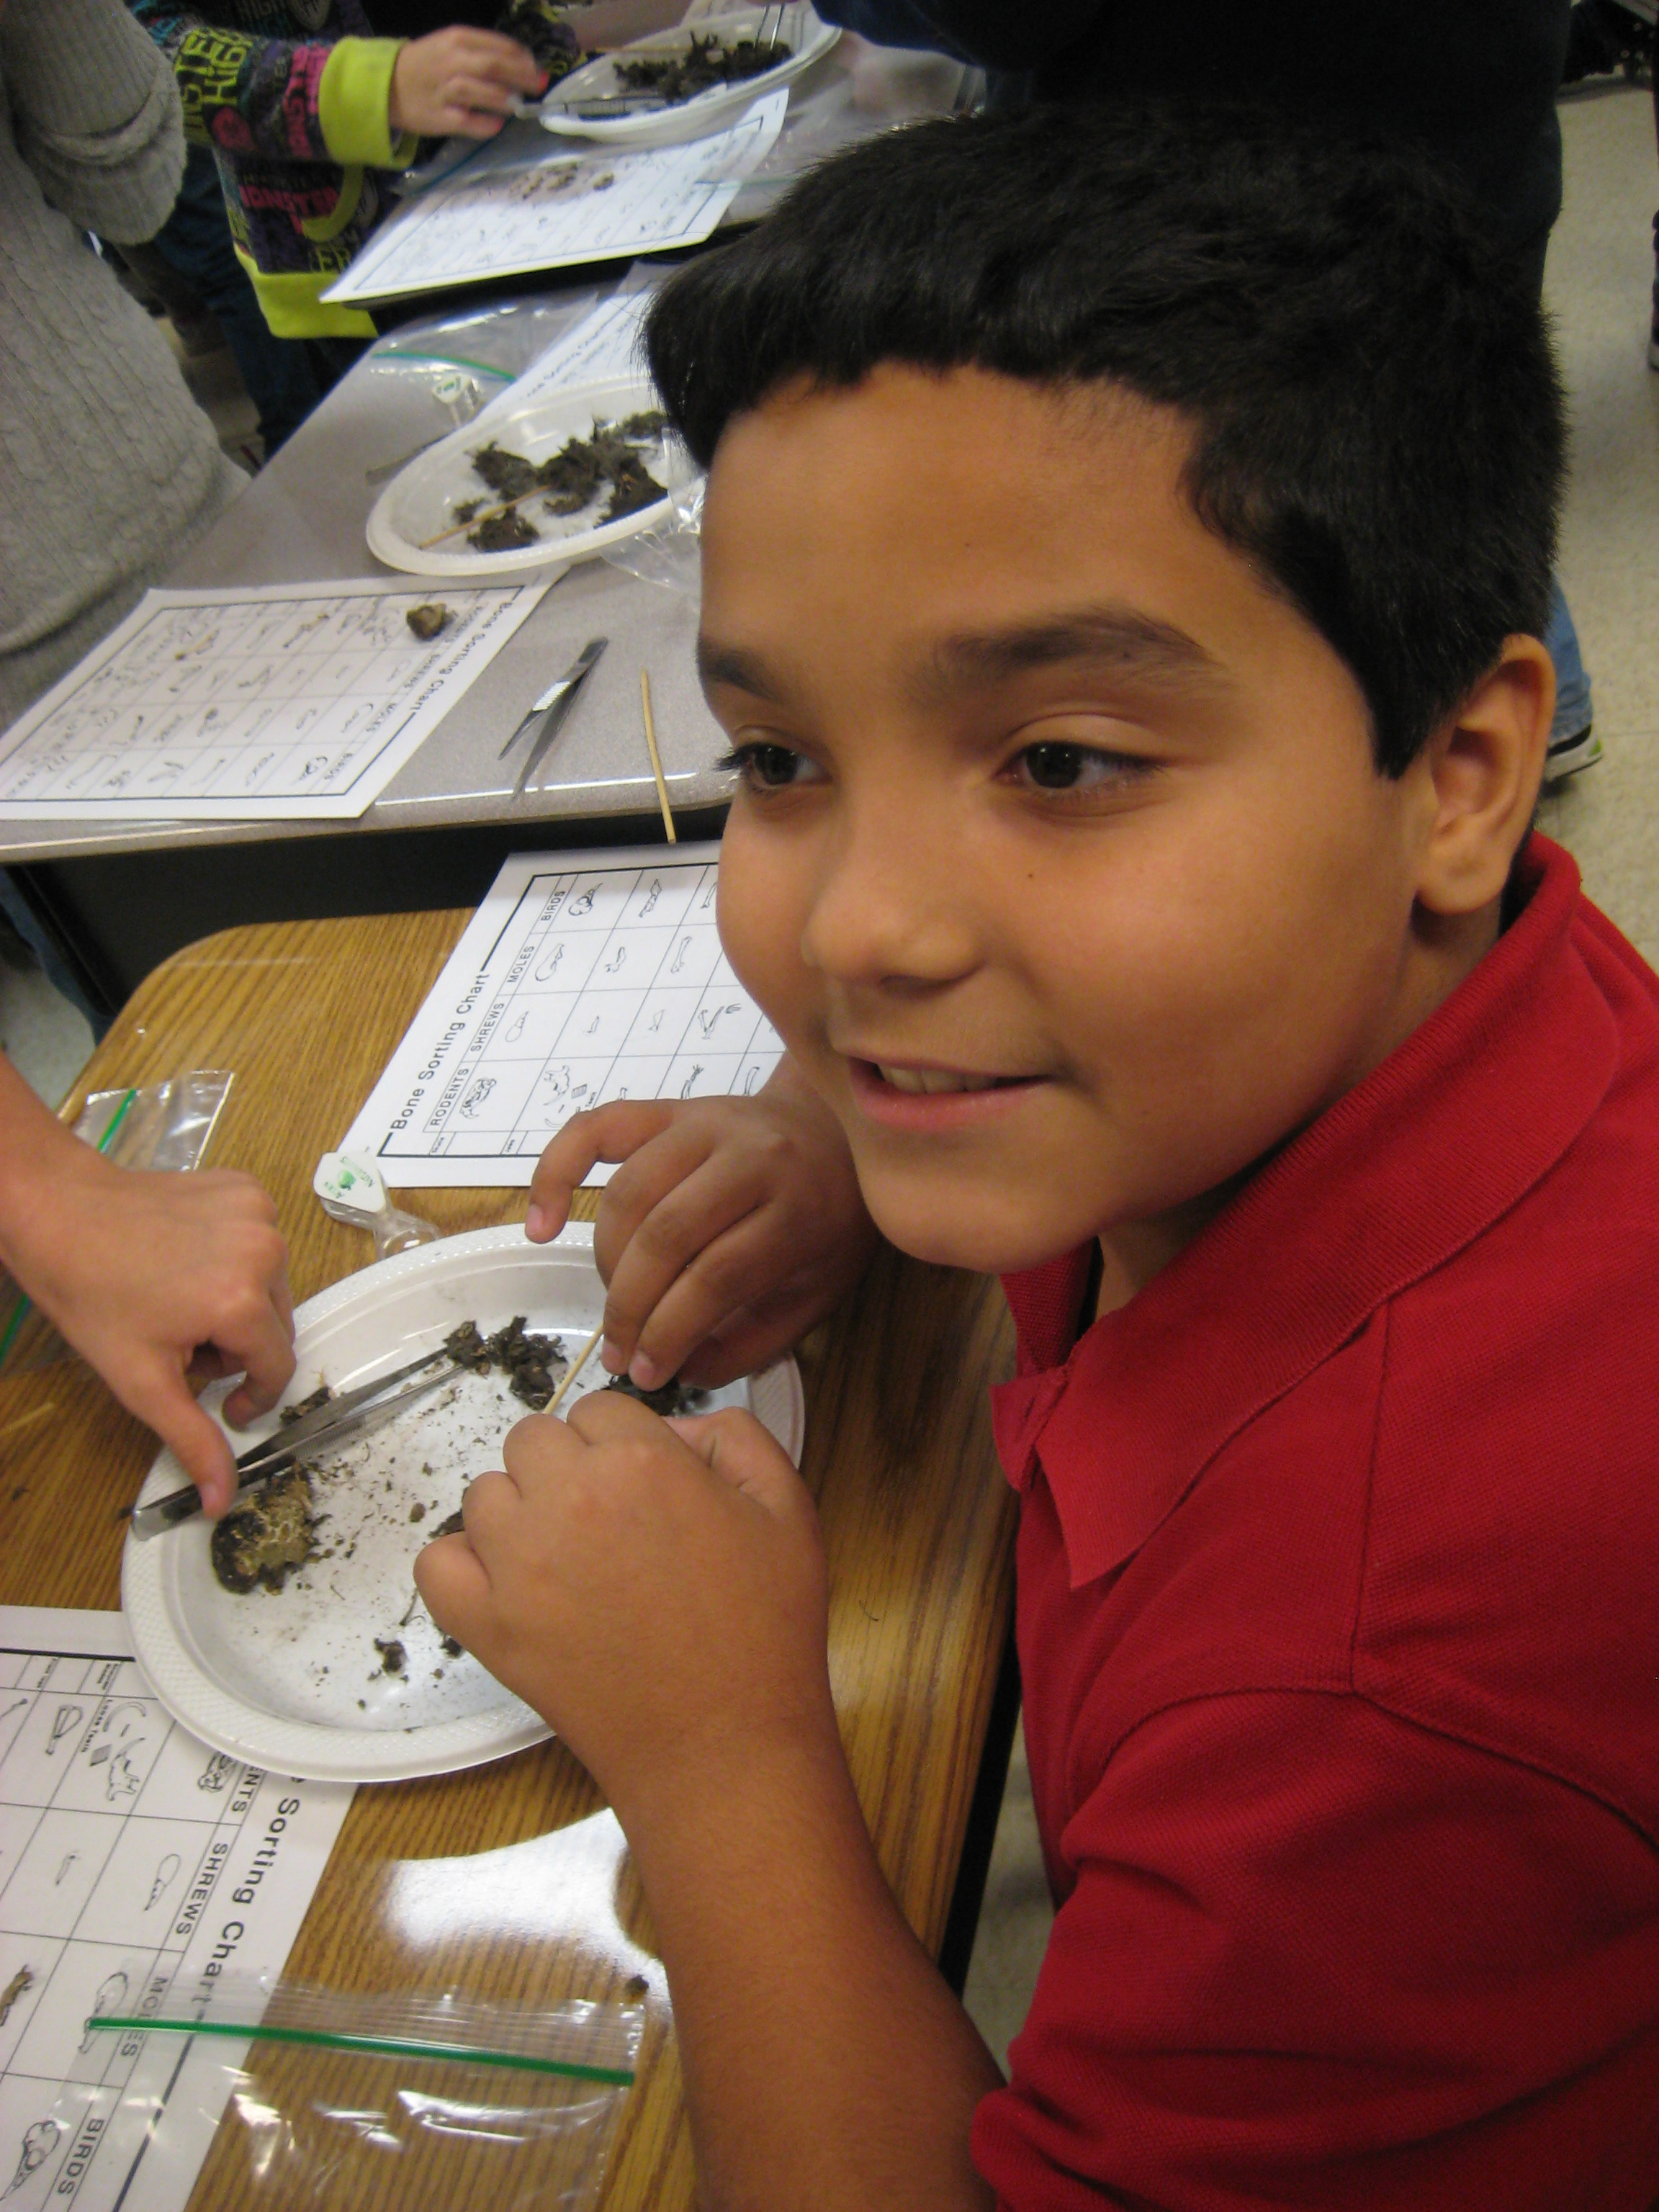 Mariposa Elementary students learn hands-on about nature